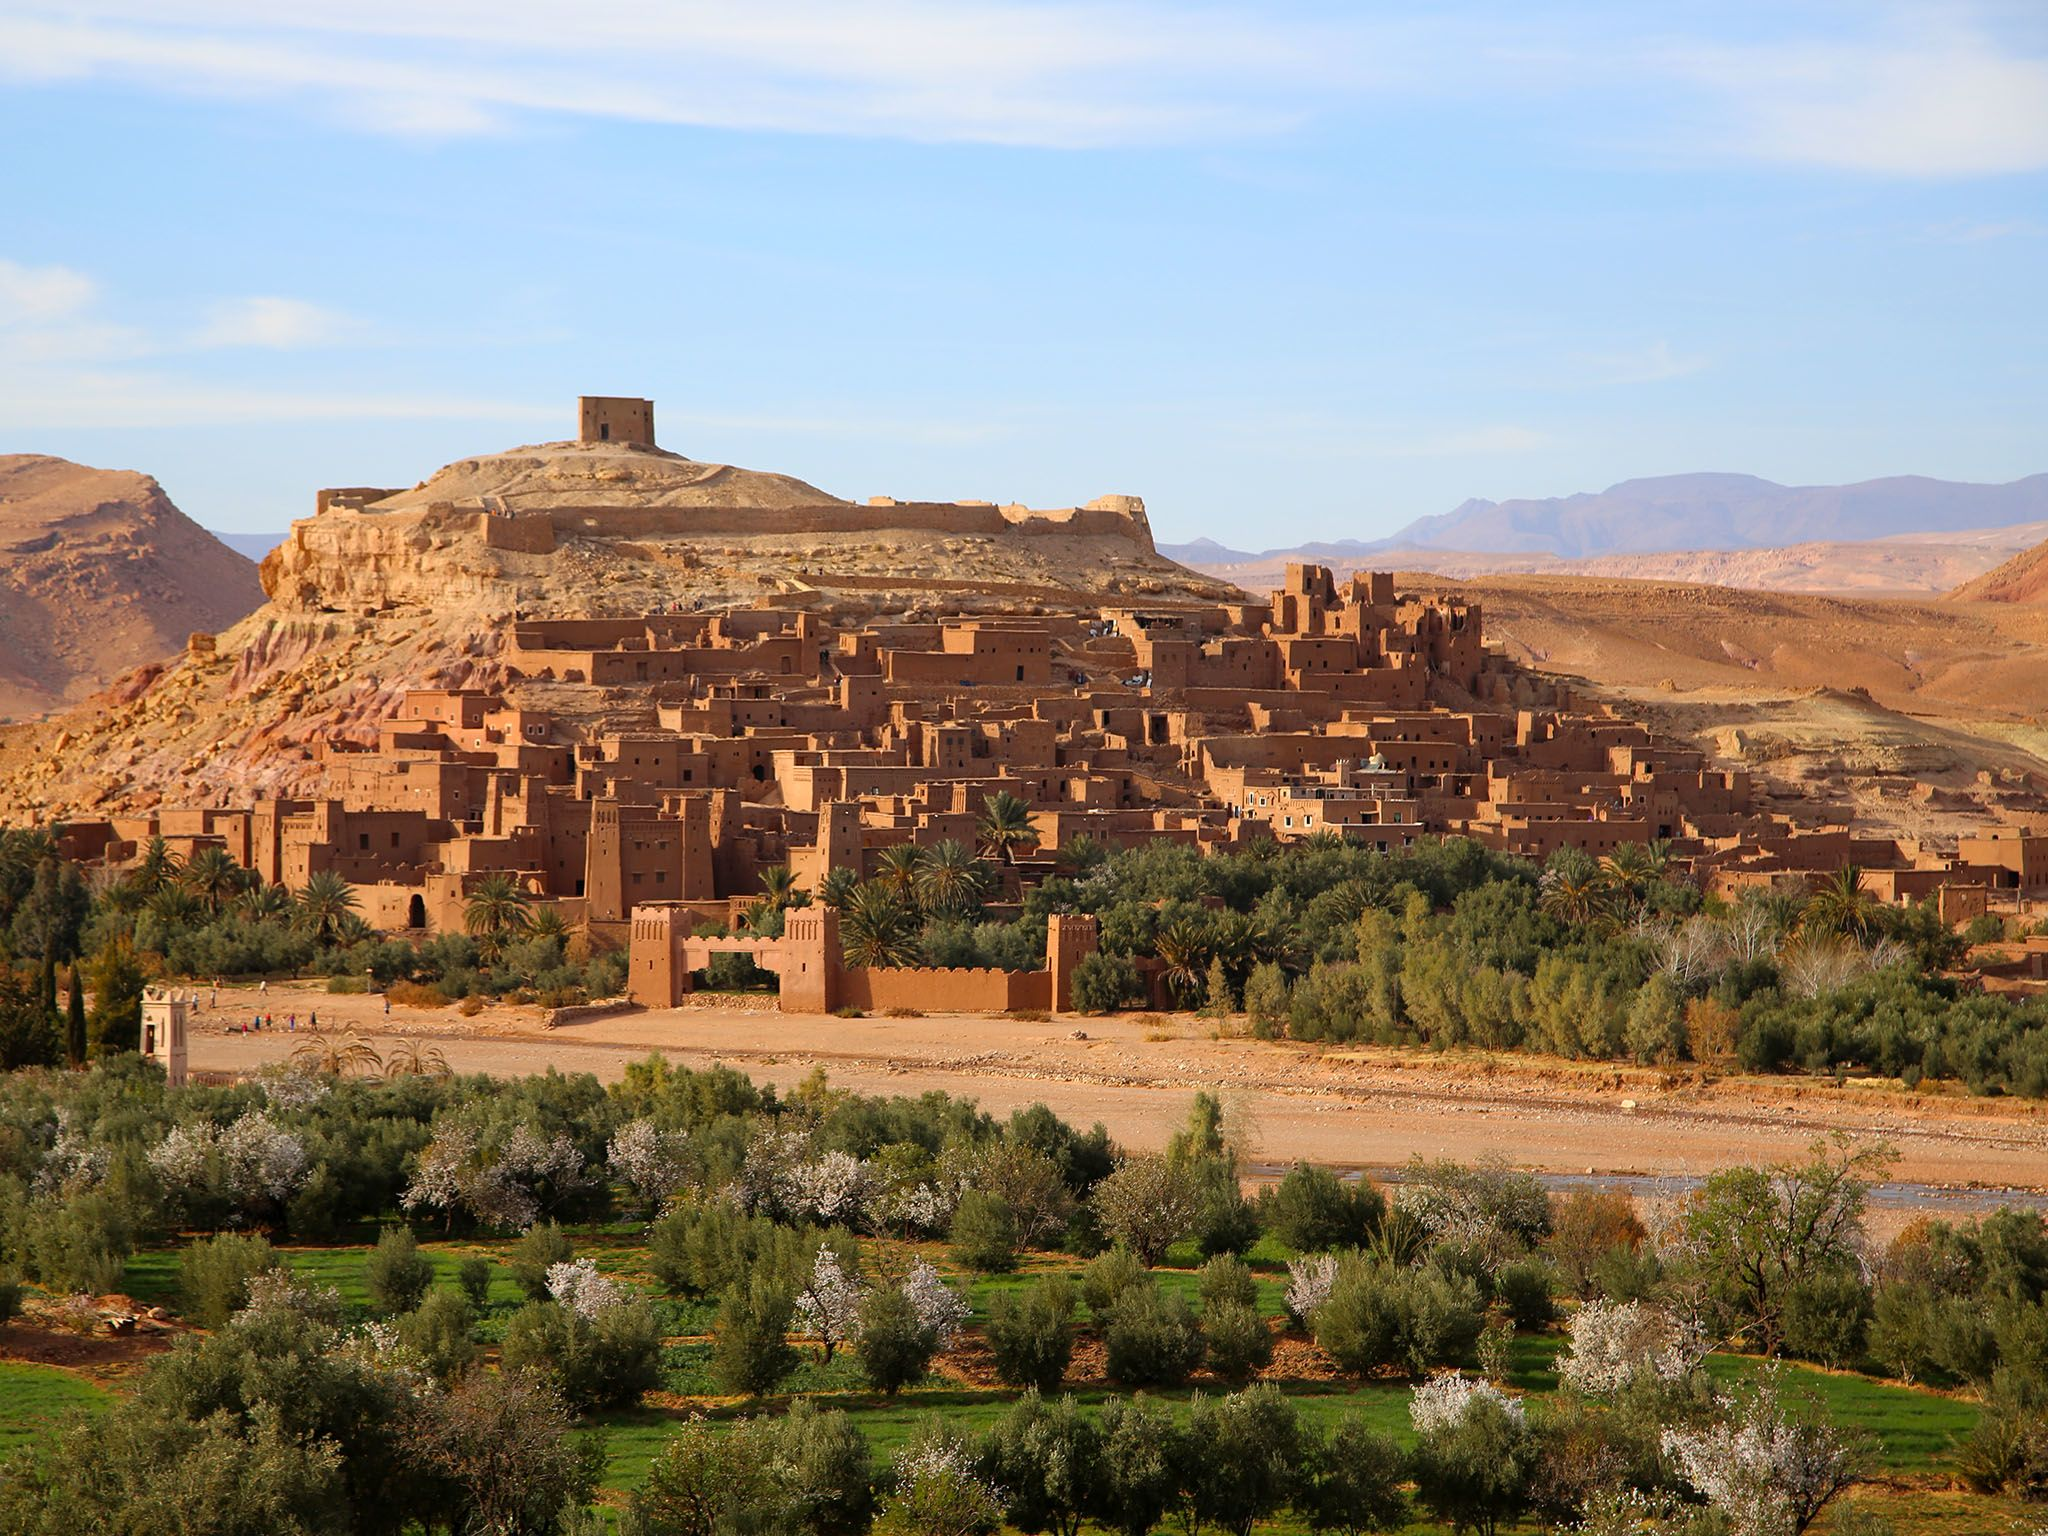 Ait Benhaddou, Morocco: The Ksar of Ait Benhaddou. This image is from Riding Morocco: Chasing... [Photo of the day - June 2016]